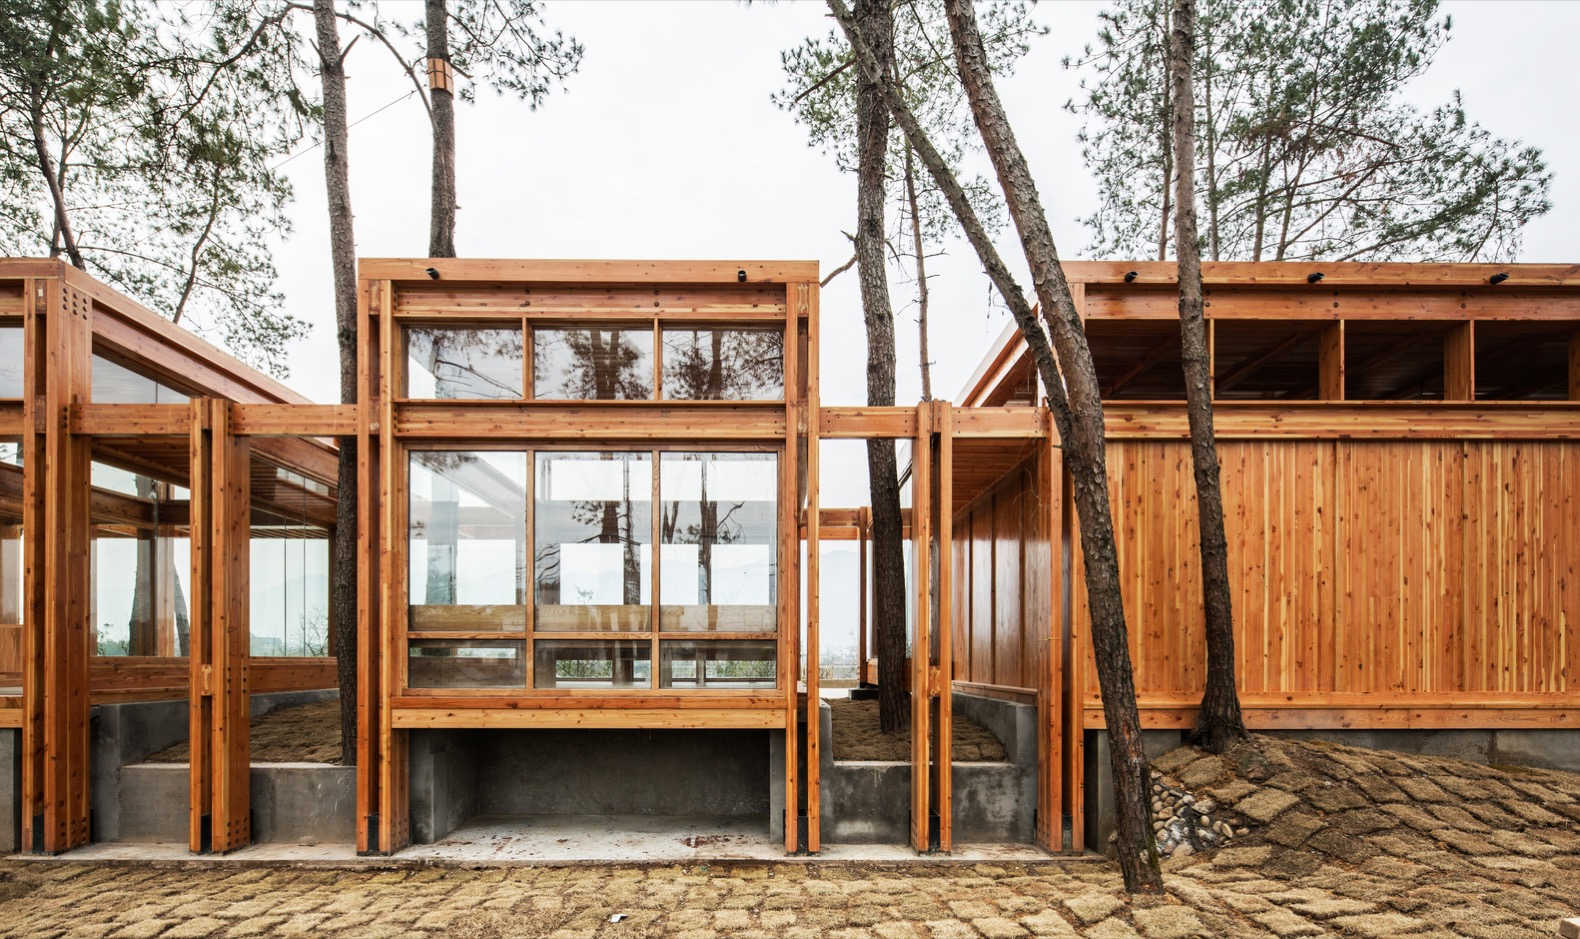 This prefab pavilion in Zhejiang brings travelers closer to nature